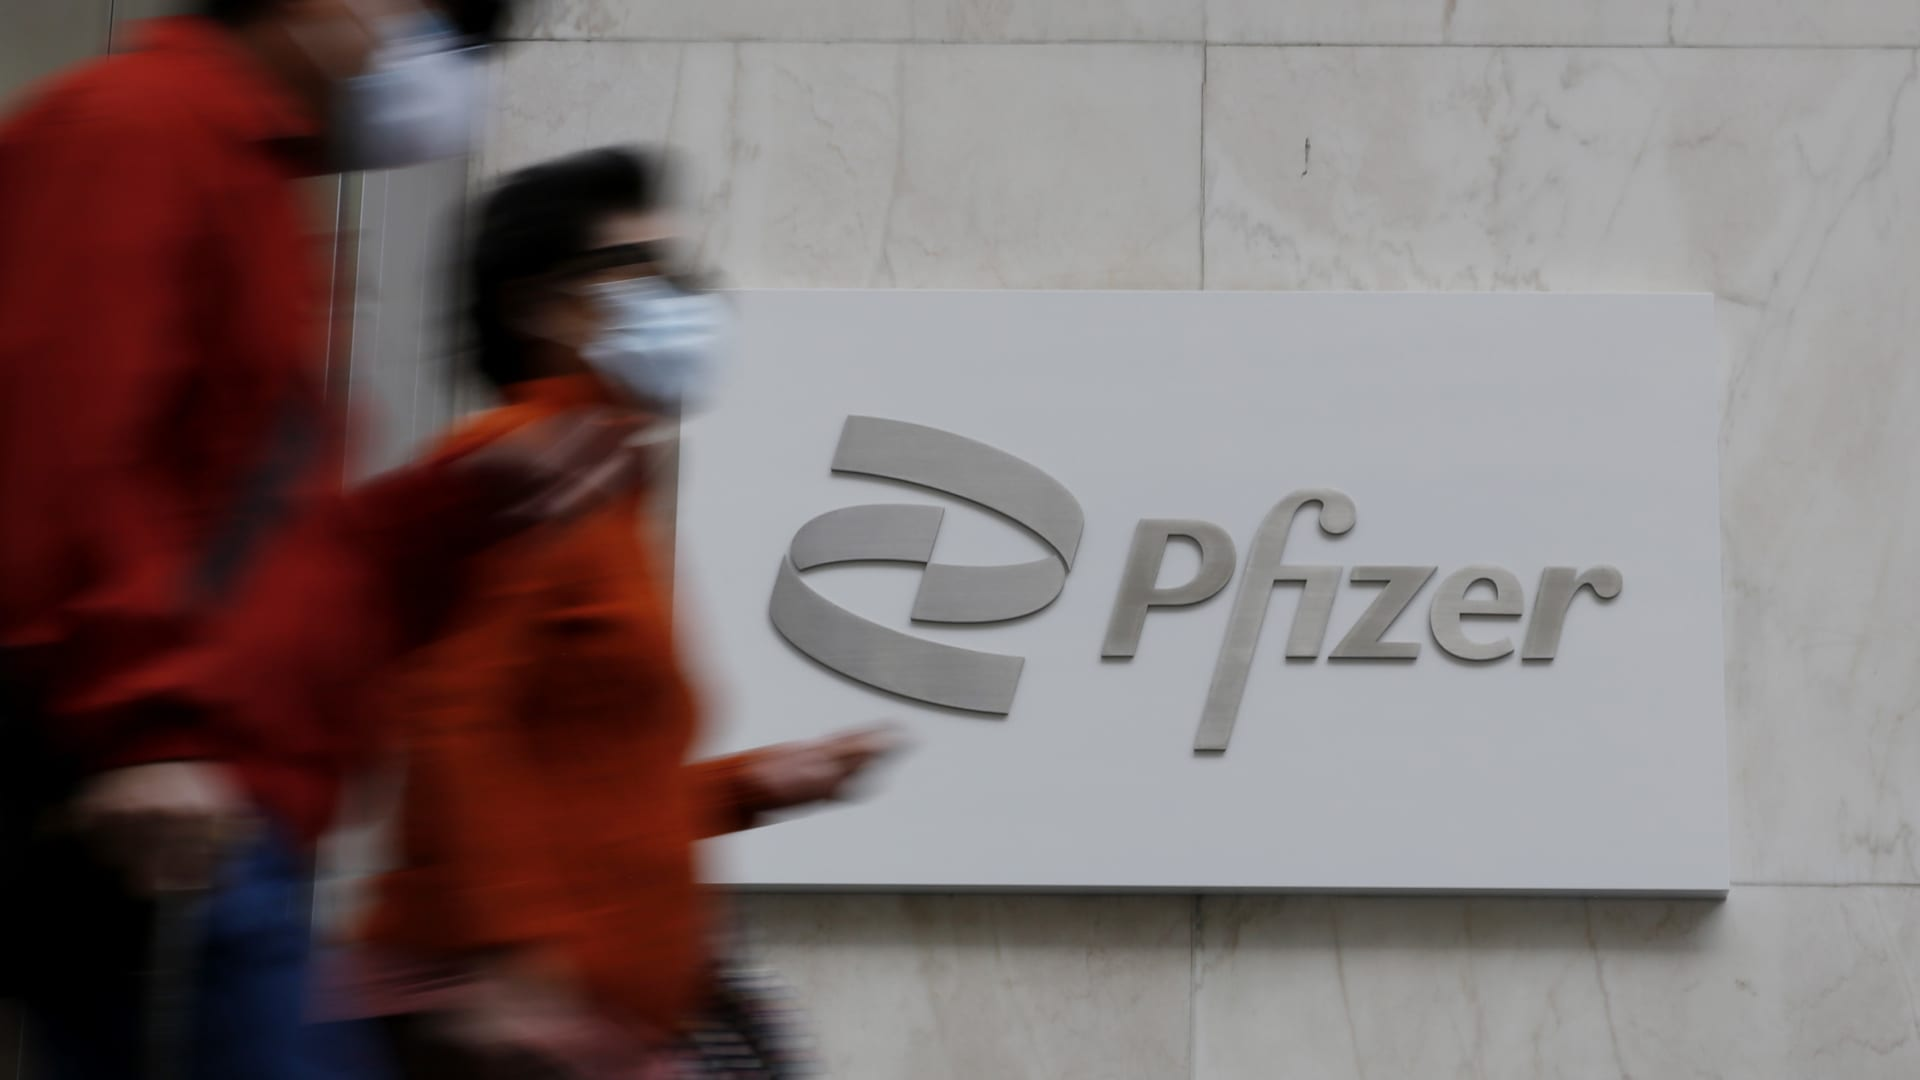 People walk in front of Pfizer sign at Pfizer World Headquarters on March 23, 2021 in New York. The Food and Drug Administration (FDA) says Pfizer's coronavirus vaccine can be stored in normal freezers for two weeks, instead of storage at ultra-cold temperatures.